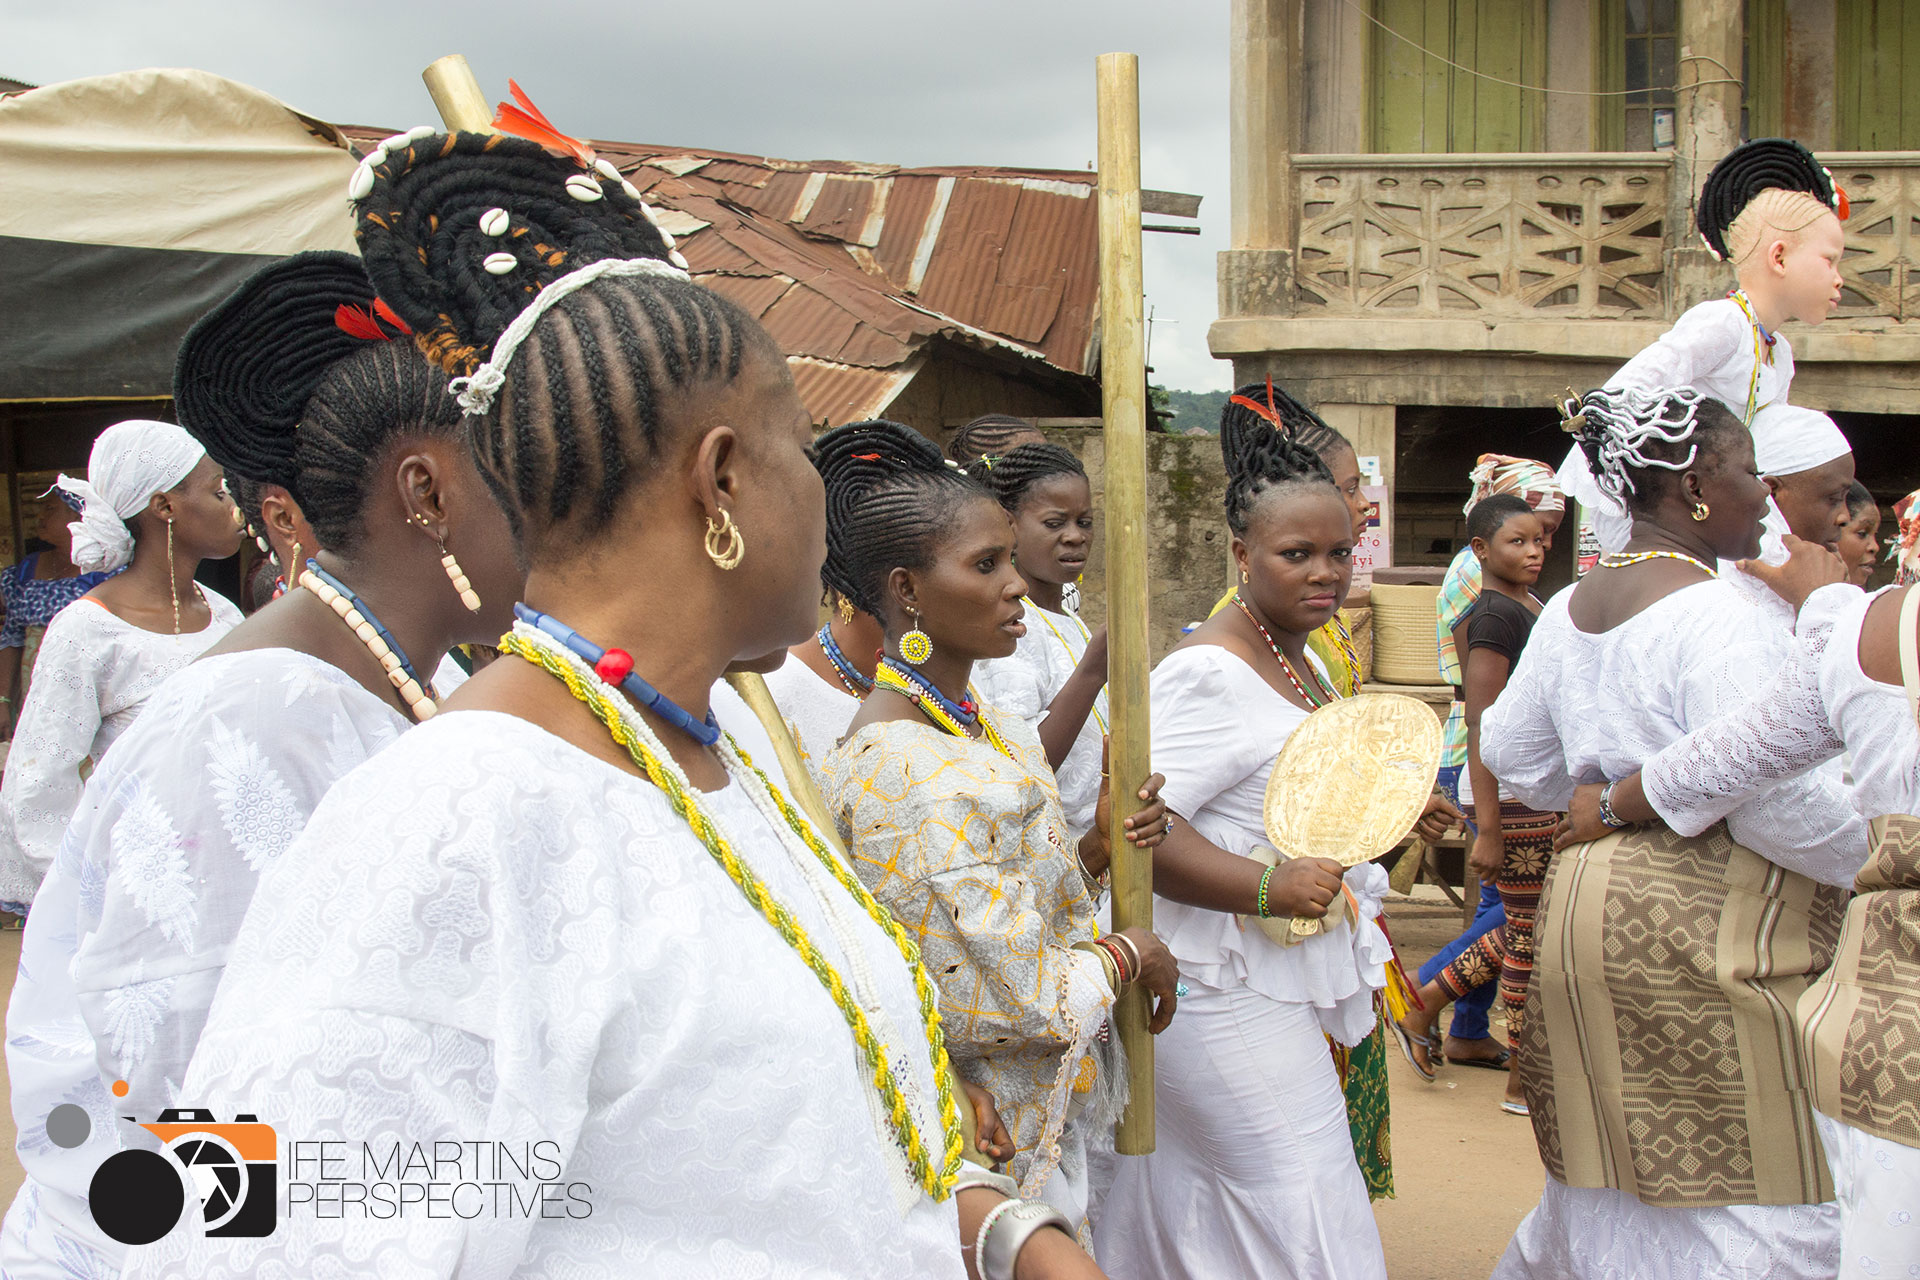 "The festival of Ọ̀ṣun in Òṣogbo in 2015, where Báyọ̀ was accompanied by photographer Ife Martins. Here some of the leading Ọ̀ṣun priestesses of the town, in the middle          96              Normal   0       21       false   false   false     DE   JA   X-NONE                                                                                                                                                                                                                                                                                                                                                                                                                                                                                                                                                                                                                                                                                                                                                                                                                                                                                 /* Style Definitions */ table.MsoNormalTable 	{mso-style-name:""Normale Tabelle""; 	mso-tstyle-rowband-size:0; 	mso-tstyle-colband-size:0; 	mso-style-noshow:yes; 	mso-style-priority:99; 	mso-style-parent:""""; 	mso-padding-alt:0cm 5.4pt 0cm 5.4pt; 	mso-para-margin:0cm; 	mso-para-margin-bottom:.0001pt; 	mso-pagination:widow-orphan; 	font-size:12.0pt; 	font-family:Calibri; 	mso-ascii-font-family:Calibri; 	mso-ascii-theme-font:minor-latin; 	mso-hansi-font-family:Calibri; 	mso-hansi-theme-font:minor-latin; 	mso-fareast-language:EN-US;}     Ọláyíwọlá Ọládùnní Ọlọ́ṣun  and          96              Normal   0       21       false   false   false     DE   JA   X-NONE                                                                                                                                                                                                                                                                                                                                                                                                                                                                                                                                                                                                                                                                                                                                                                                                                                                                                 /* Style Definitions */ table.MsoNormalTable 	{mso-style-name:""Normale Tabelle""; 	mso-tstyle-rowband-size:0; 	mso-tstyle-colband-size:0; 	mso-style-noshow:yes; 	mso-style-priority:99; 	mso-style-parent:""""; 	mso-padding-alt:0cm 5.4pt 0cm 5.4pt; 	mso-para-margin:0cm; 	mso-para-margin-bottom:.0001pt; 	mso-pagination:widow-orphan; 	font-size:12.0pt; 	font-family:Calibri; 	mso-ascii-font-family:Calibri; 	mso-ascii-theme-font:minor-latin; 	mso-hansi-font-family:Calibri; 	mso-hansi-theme-font:minor-latin; 	mso-fareast-language:EN-US;}     Ọ̀ṣunbùkọlá Ọlọ́ṣun Ẹlẹ́búìbọn . ©  Ife Martins"